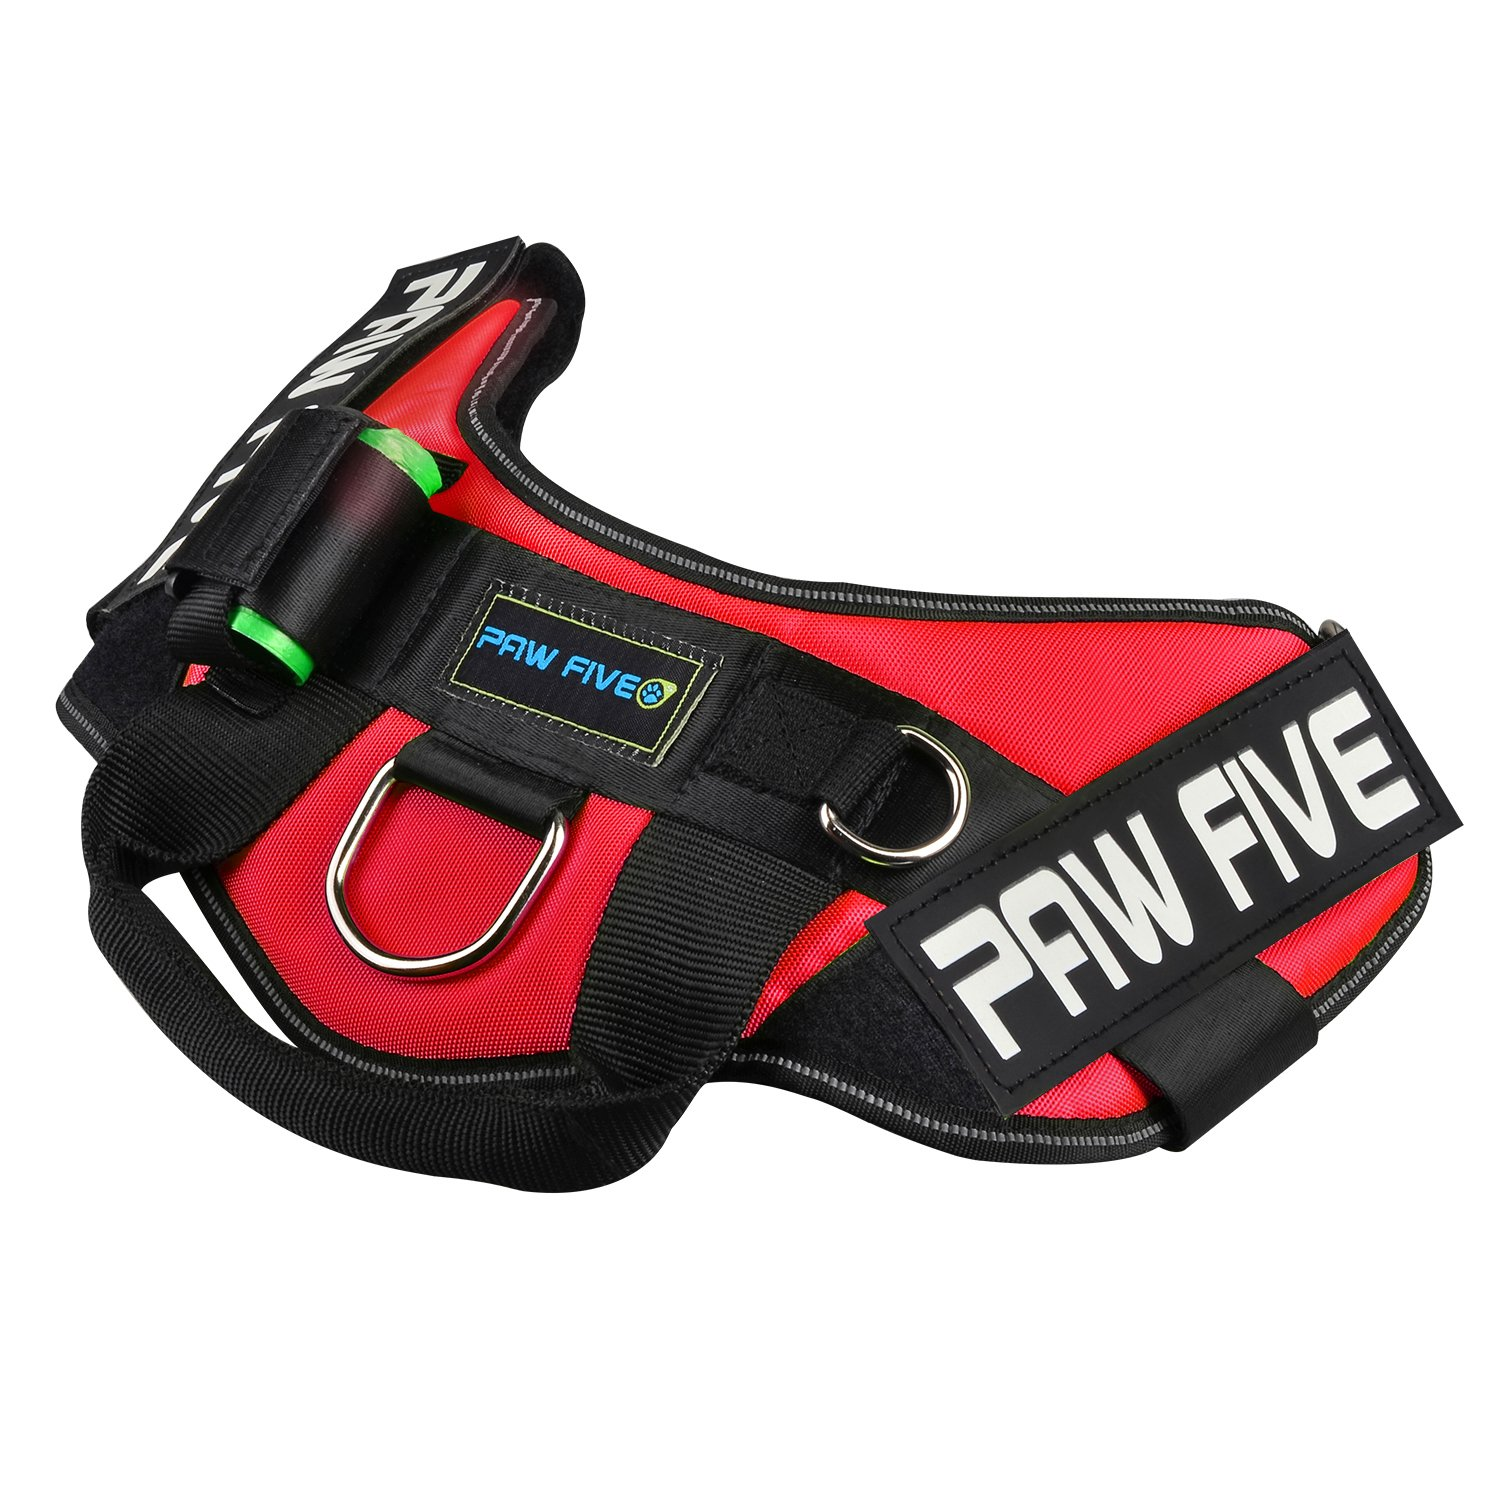 Paw Five CORE-1 Reflective Dog Harness with Built-in Waste Bag Dispenser Adjustable Padded No-Pull Easy Walk Control for Medium and Large Dogs, Check Sizing Chart Before Ordering (Medium, Lava Red) by Paw Five (Image #5)